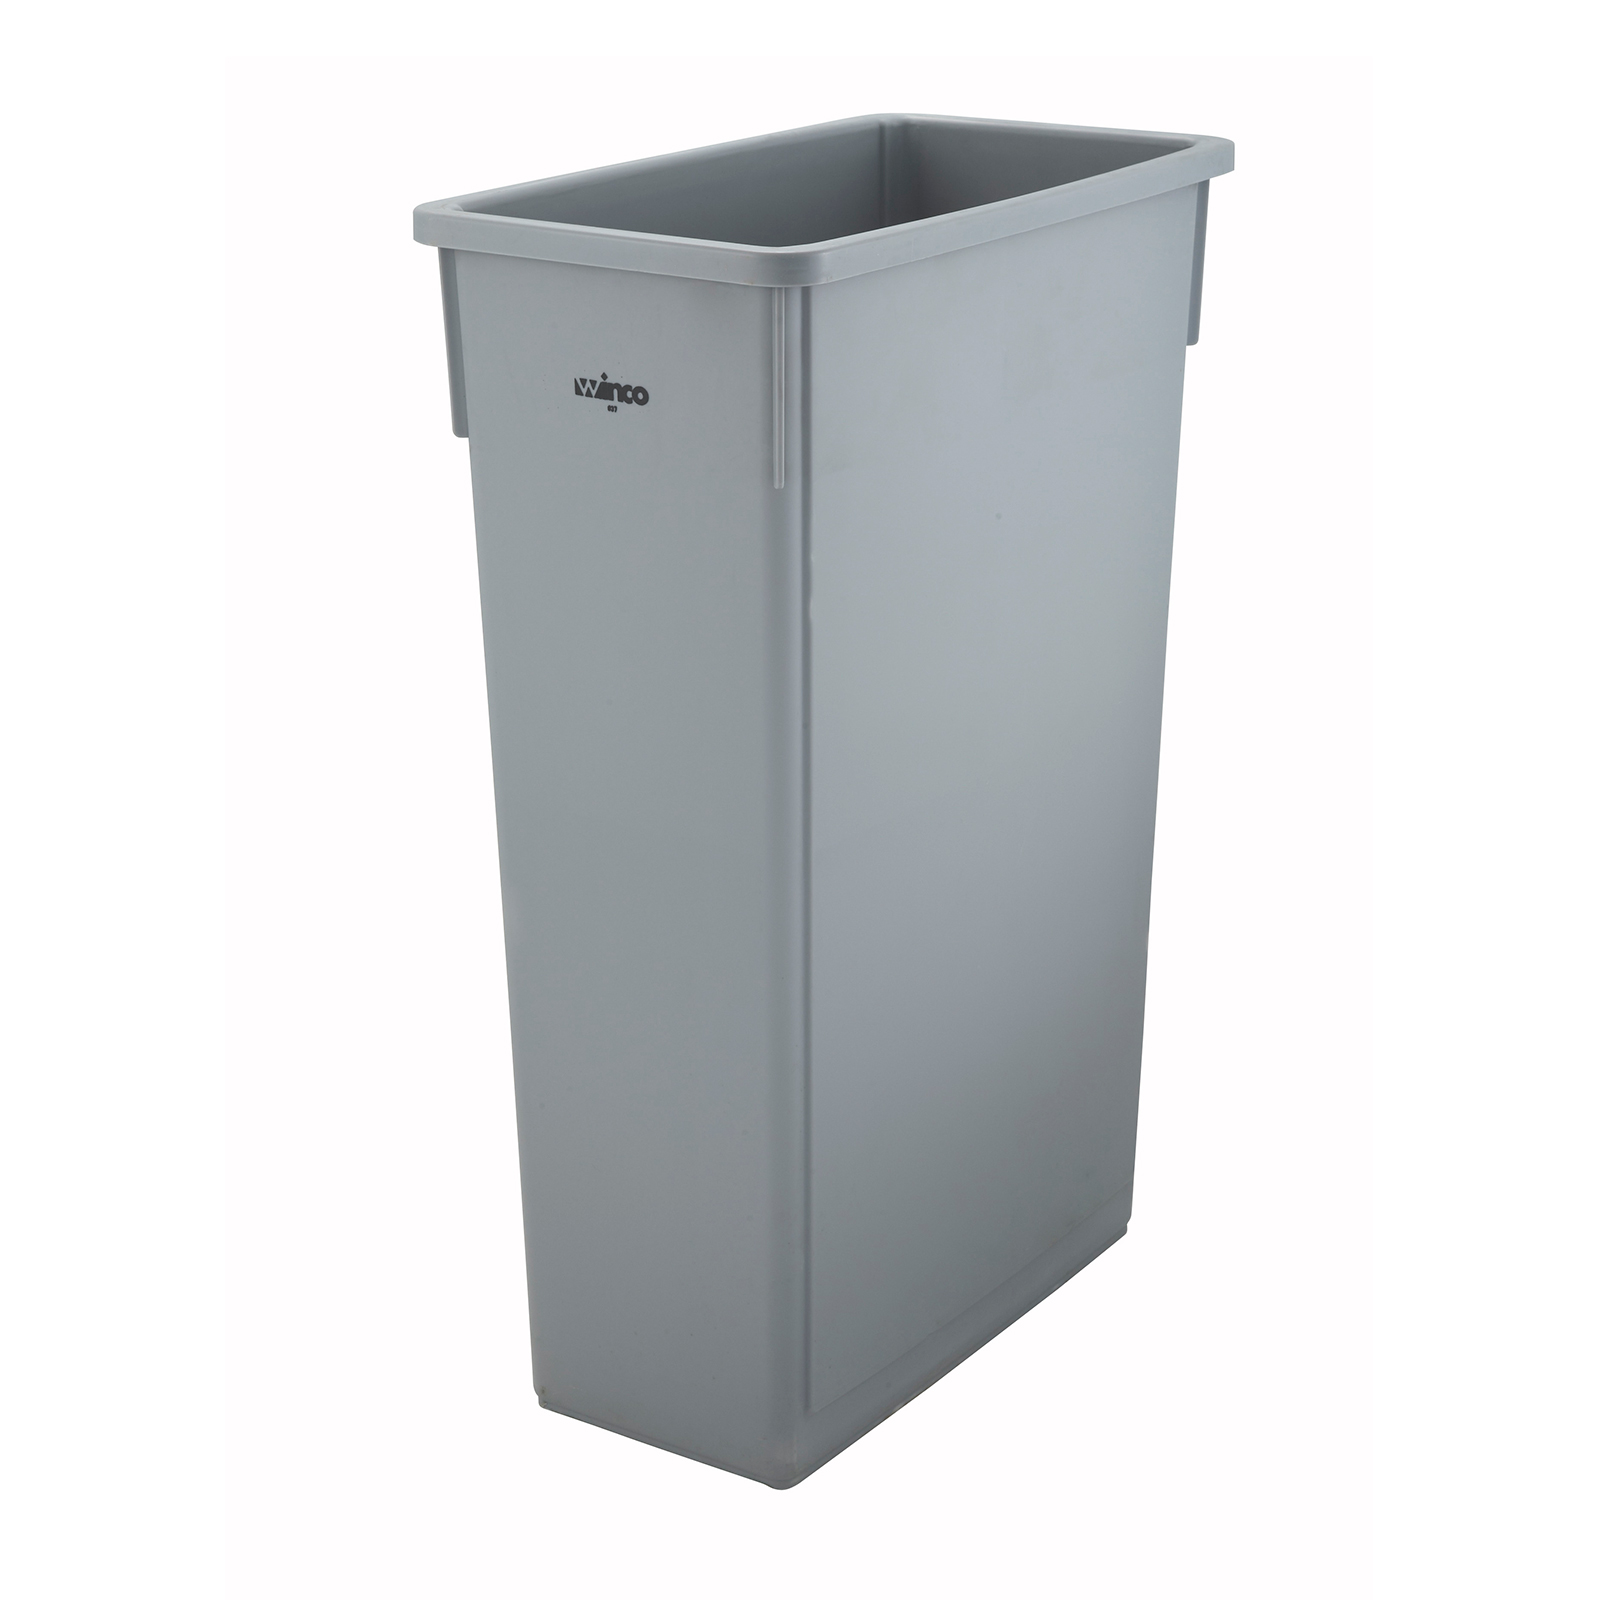 Winco PTC-23SG trash receptacle, indoor